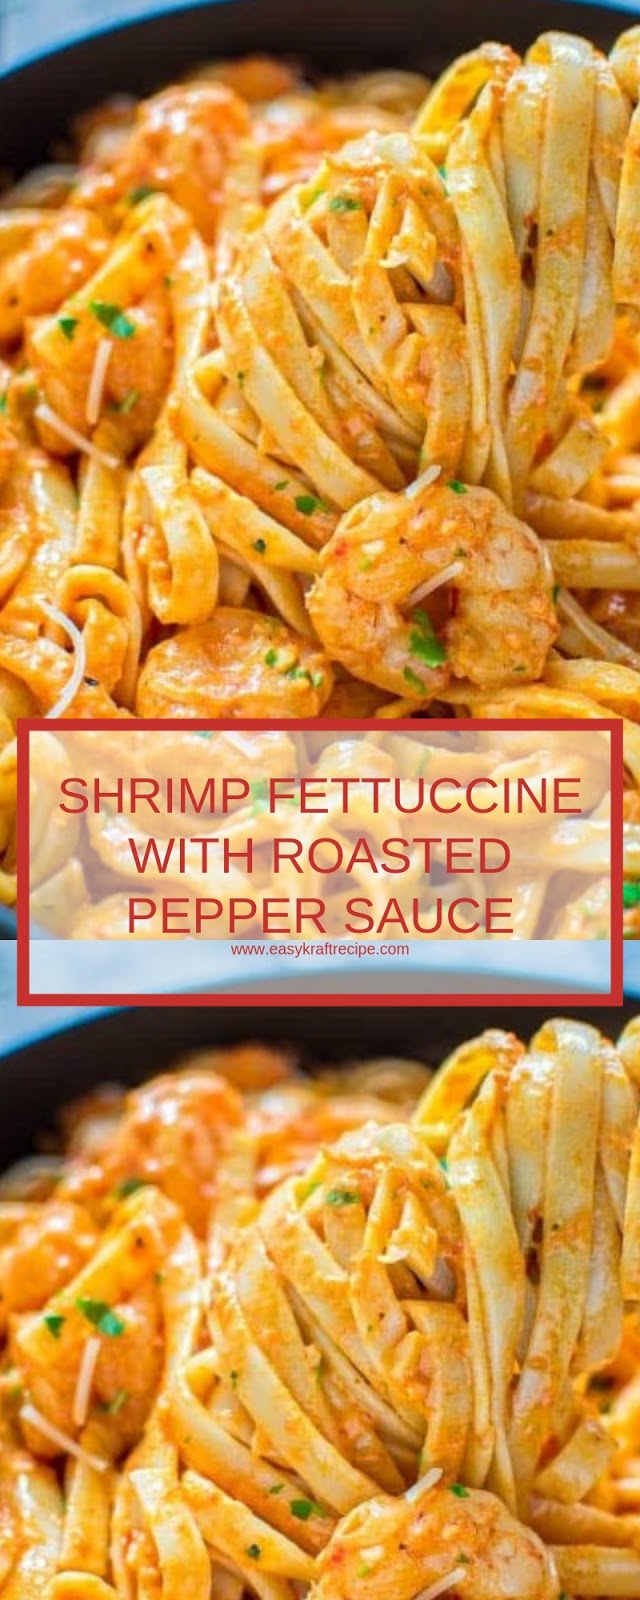 SHRIMP FETTUCCINE WITH ROASTED PEPPER SAUCE